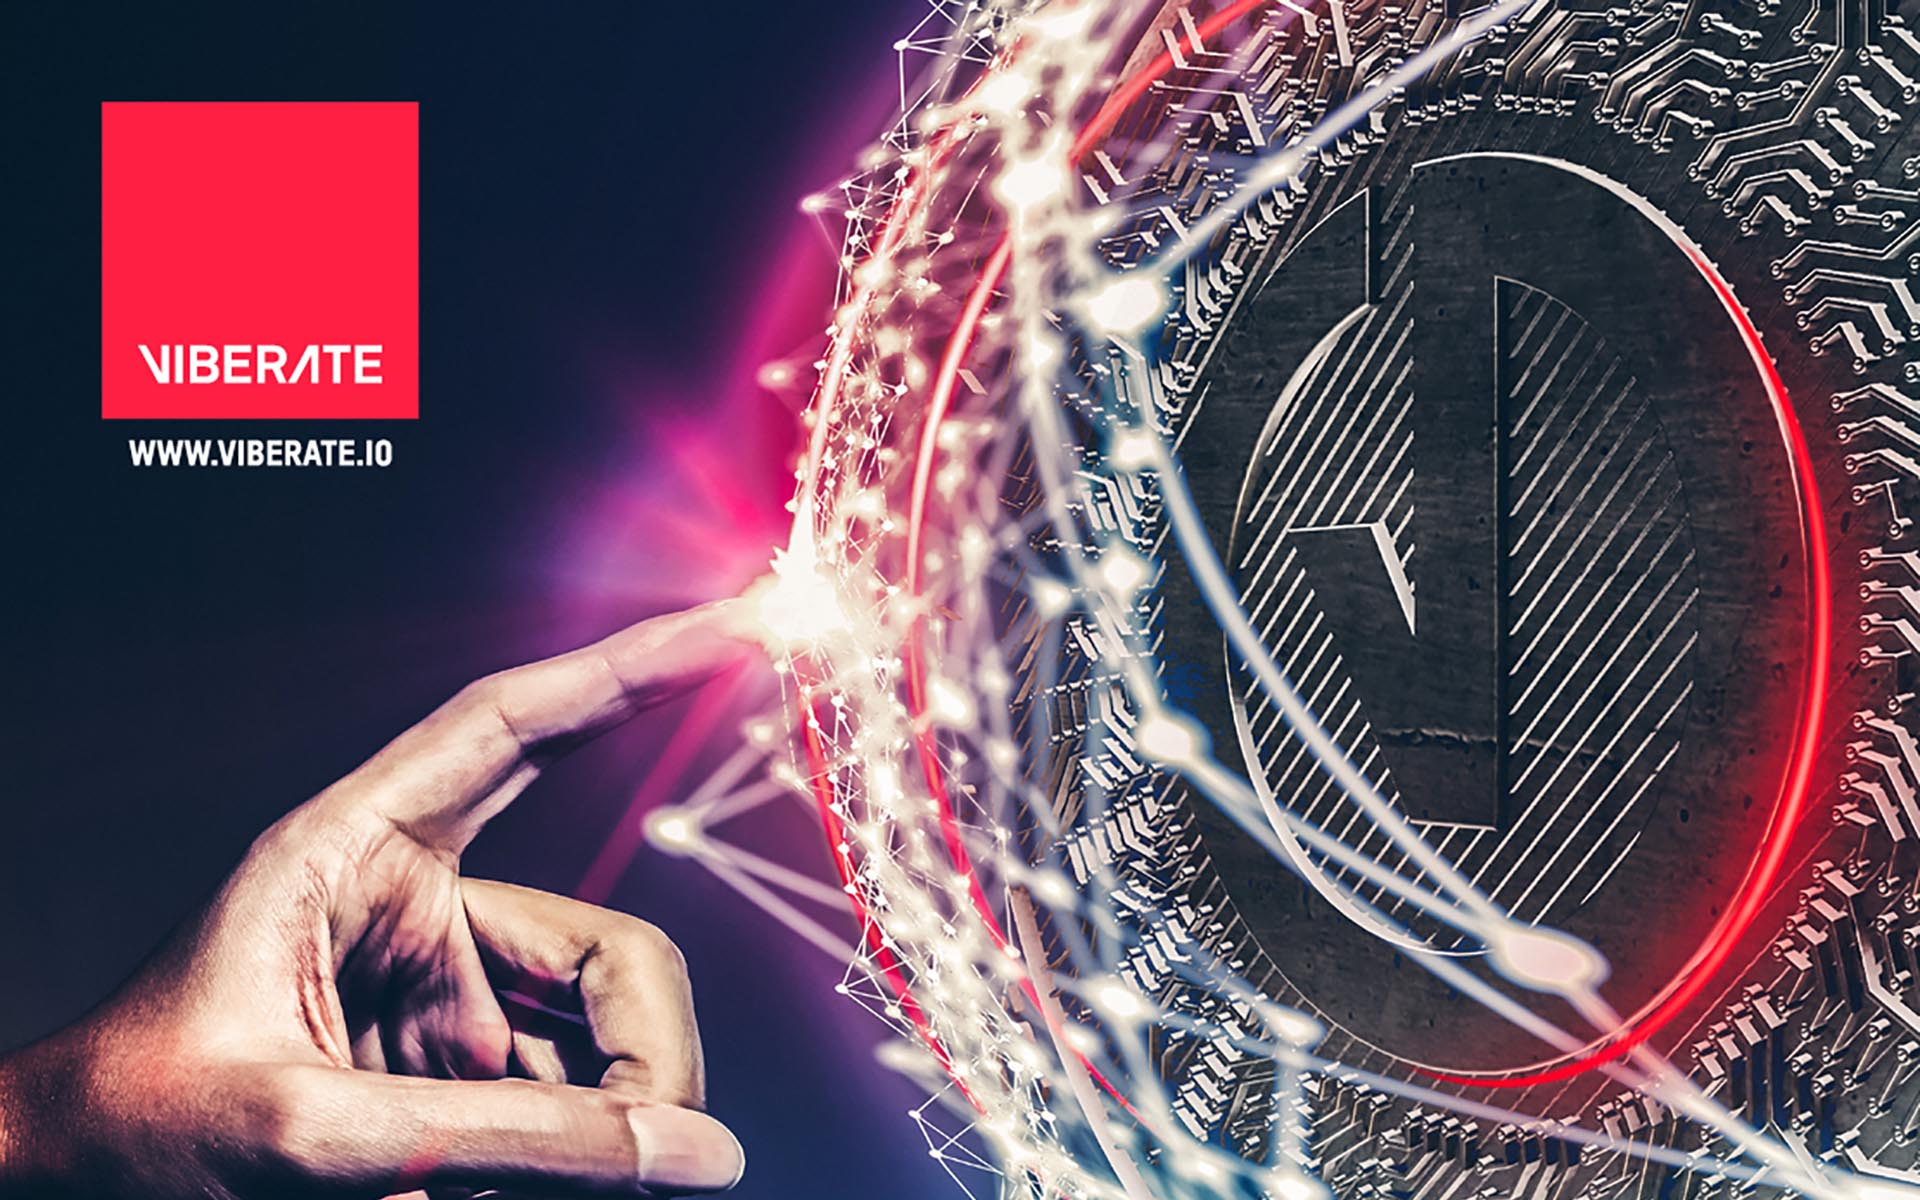 Viberate Token Unlock Coming October 6th, Trading to Open on Livecoin